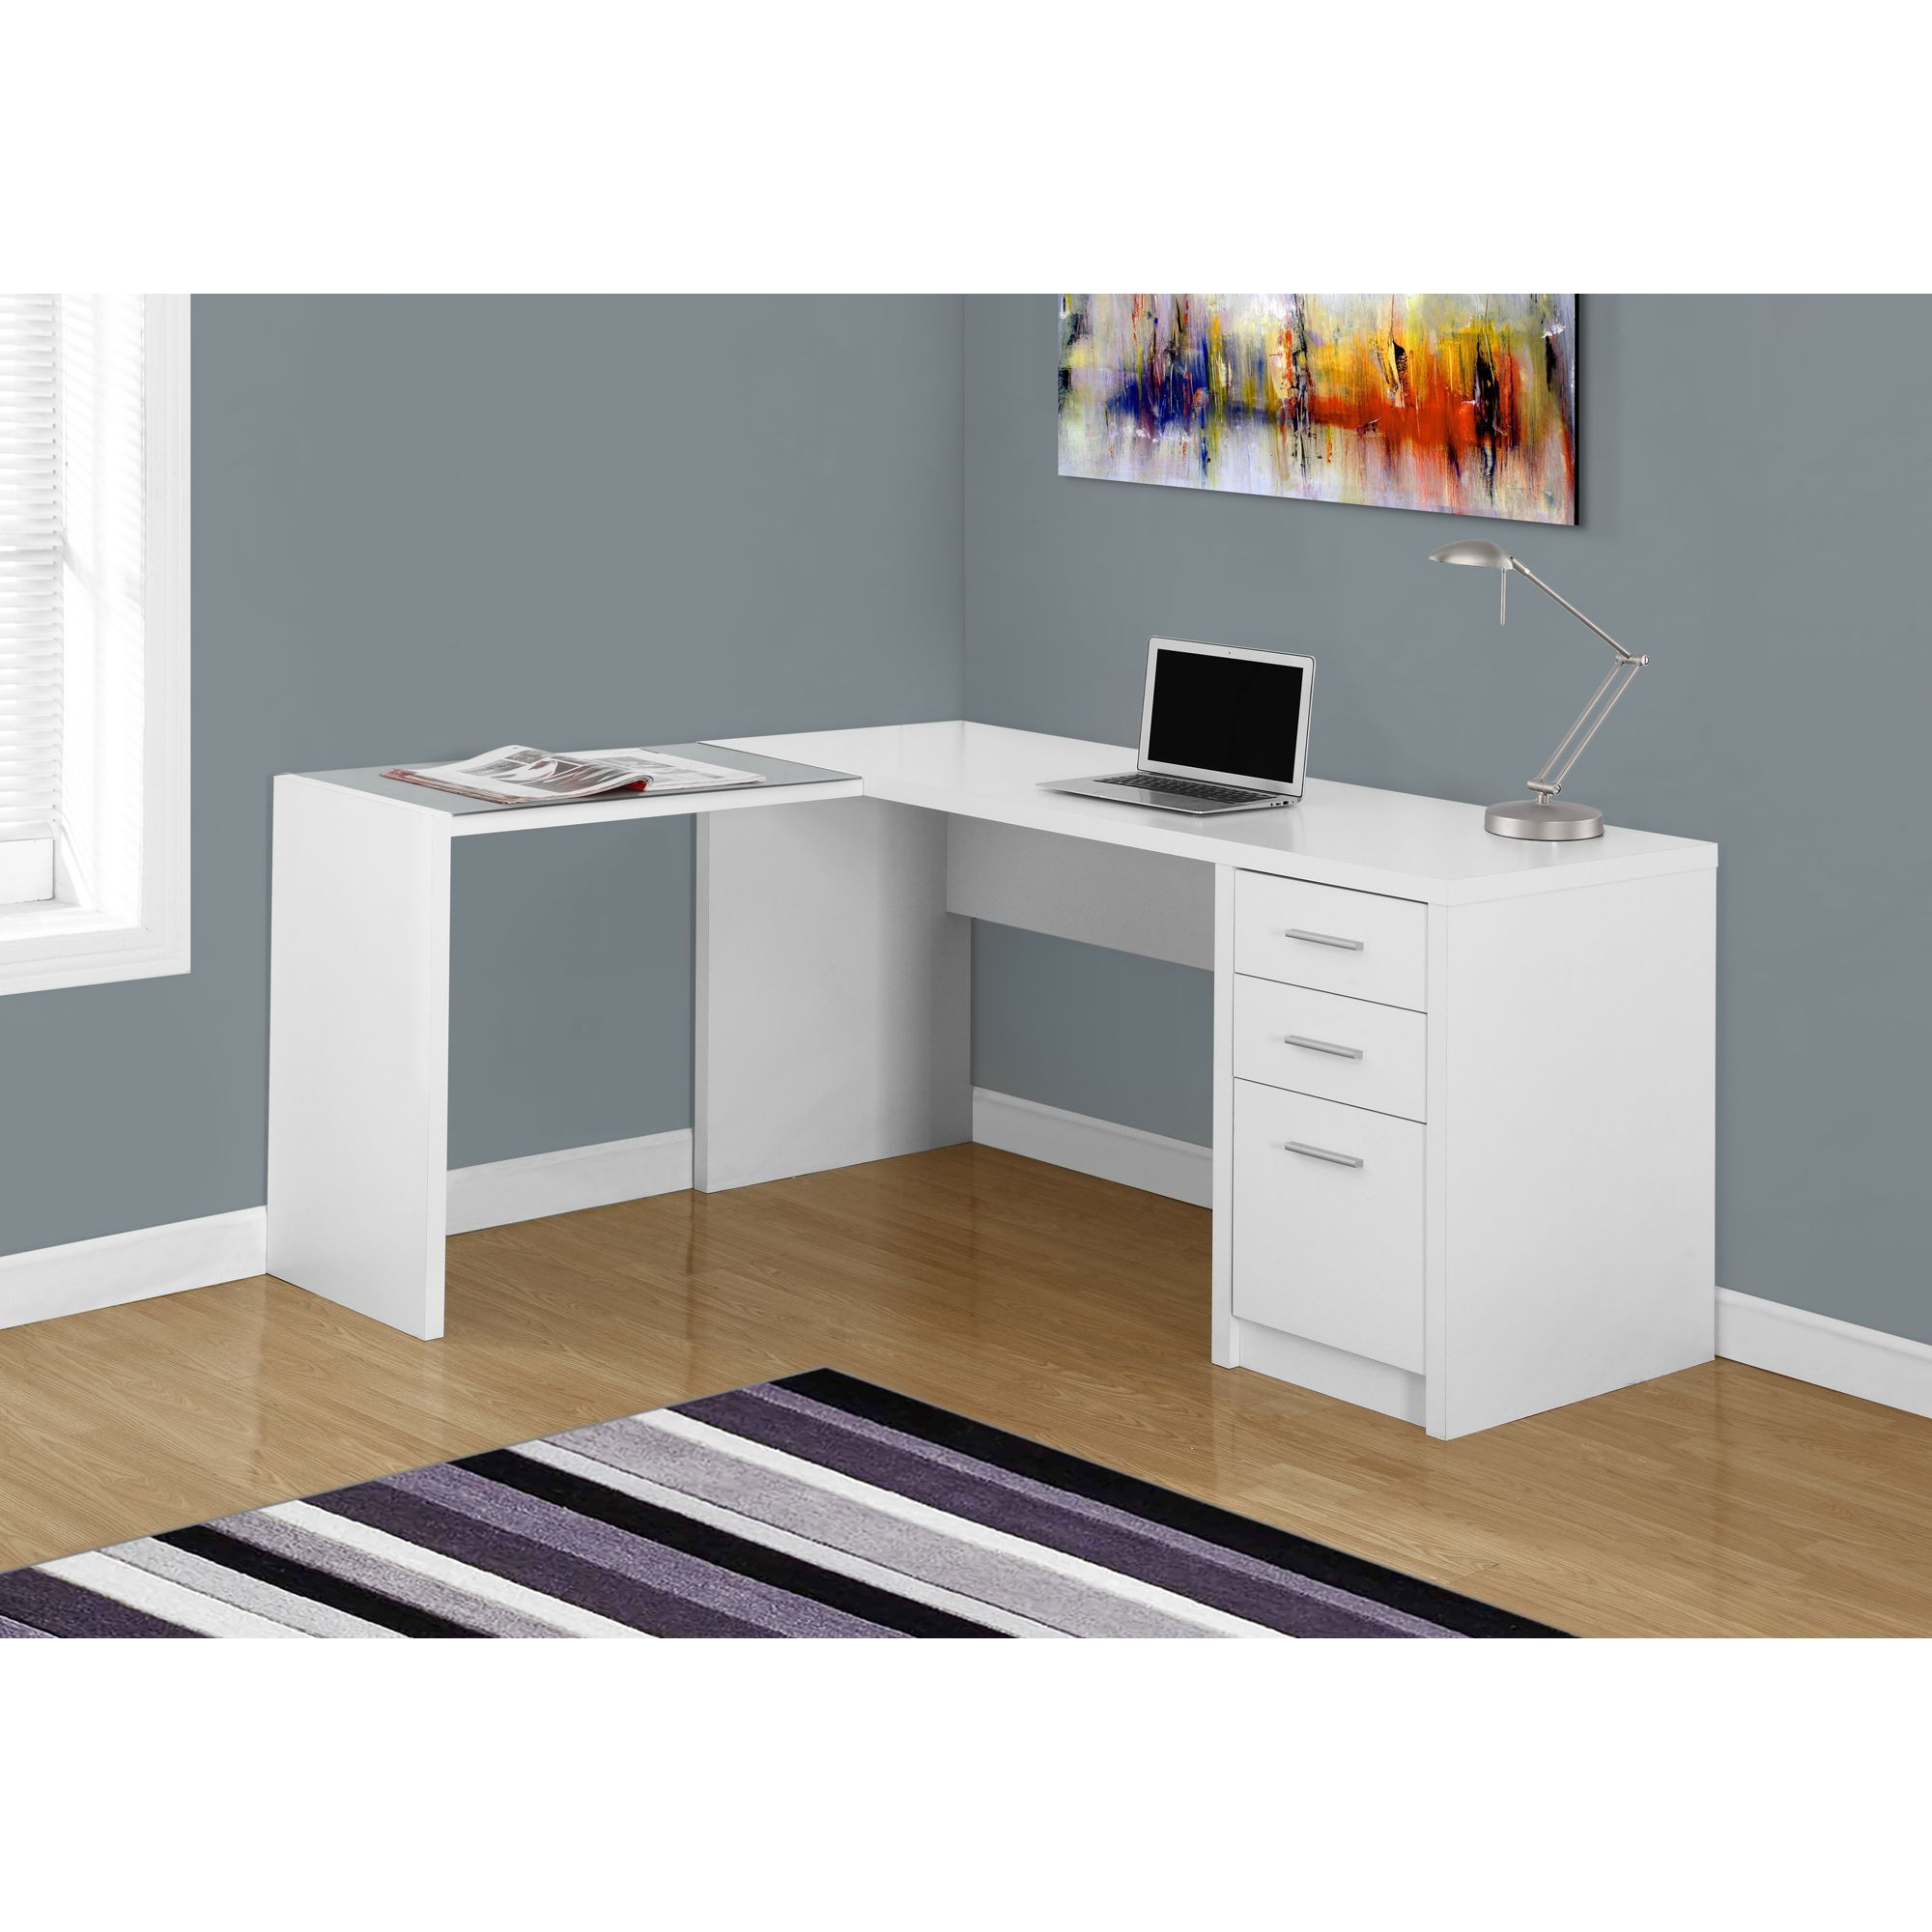 poppin l height with loft right shaped base handed desk images legs adjustable facing white